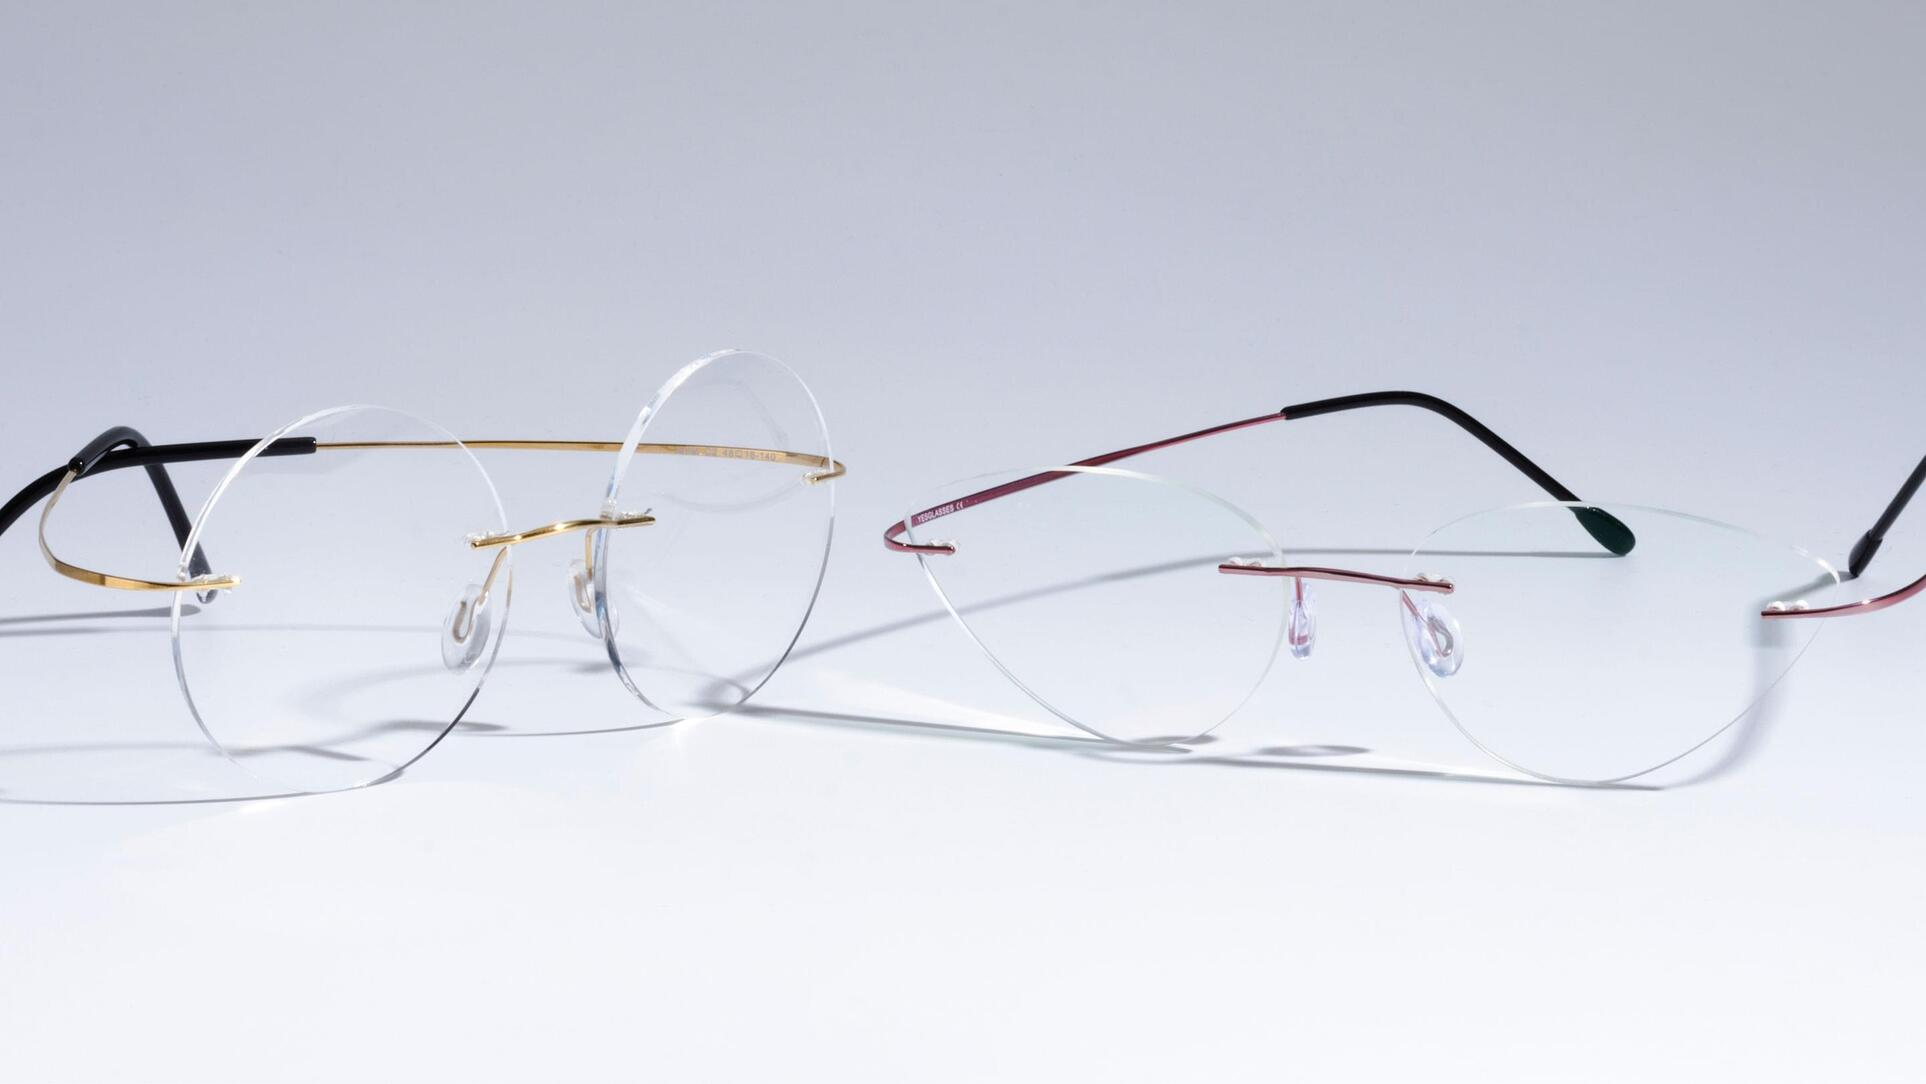 Compare frameless glasses, including round and cat eye.